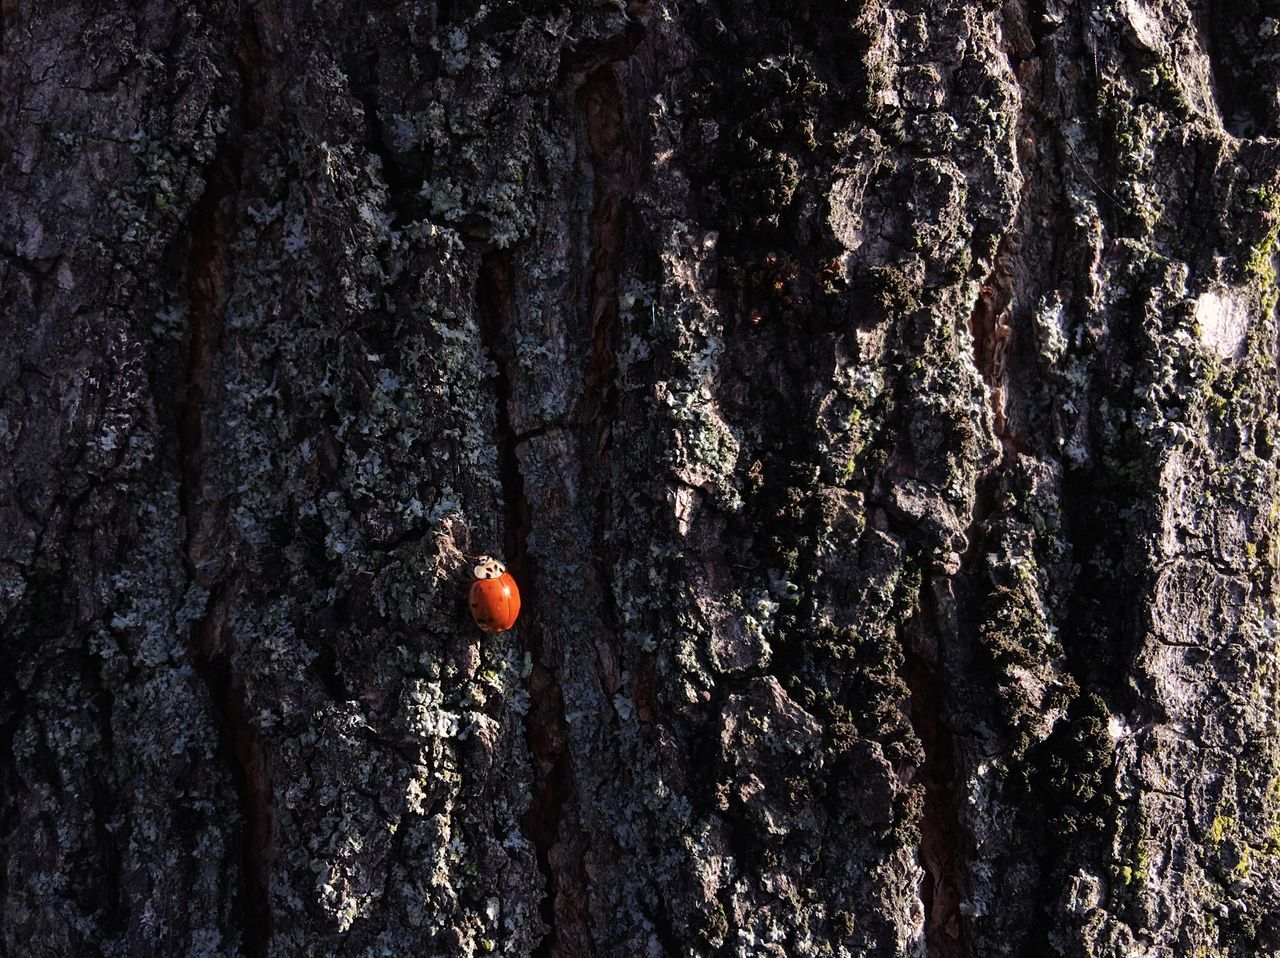 Lady bug on a tree... Tree Trunk Tree Textured  Outdoors Nature Close-up Beauty In Nature Insect Ladybug Red Texture VSCO My Favorite Photo Details Of My Life Made In Romania Nature IPhoneography Insect Macro  Insects  Textures Textures And Surfaces Macro Macro Nature Bug Bugslife